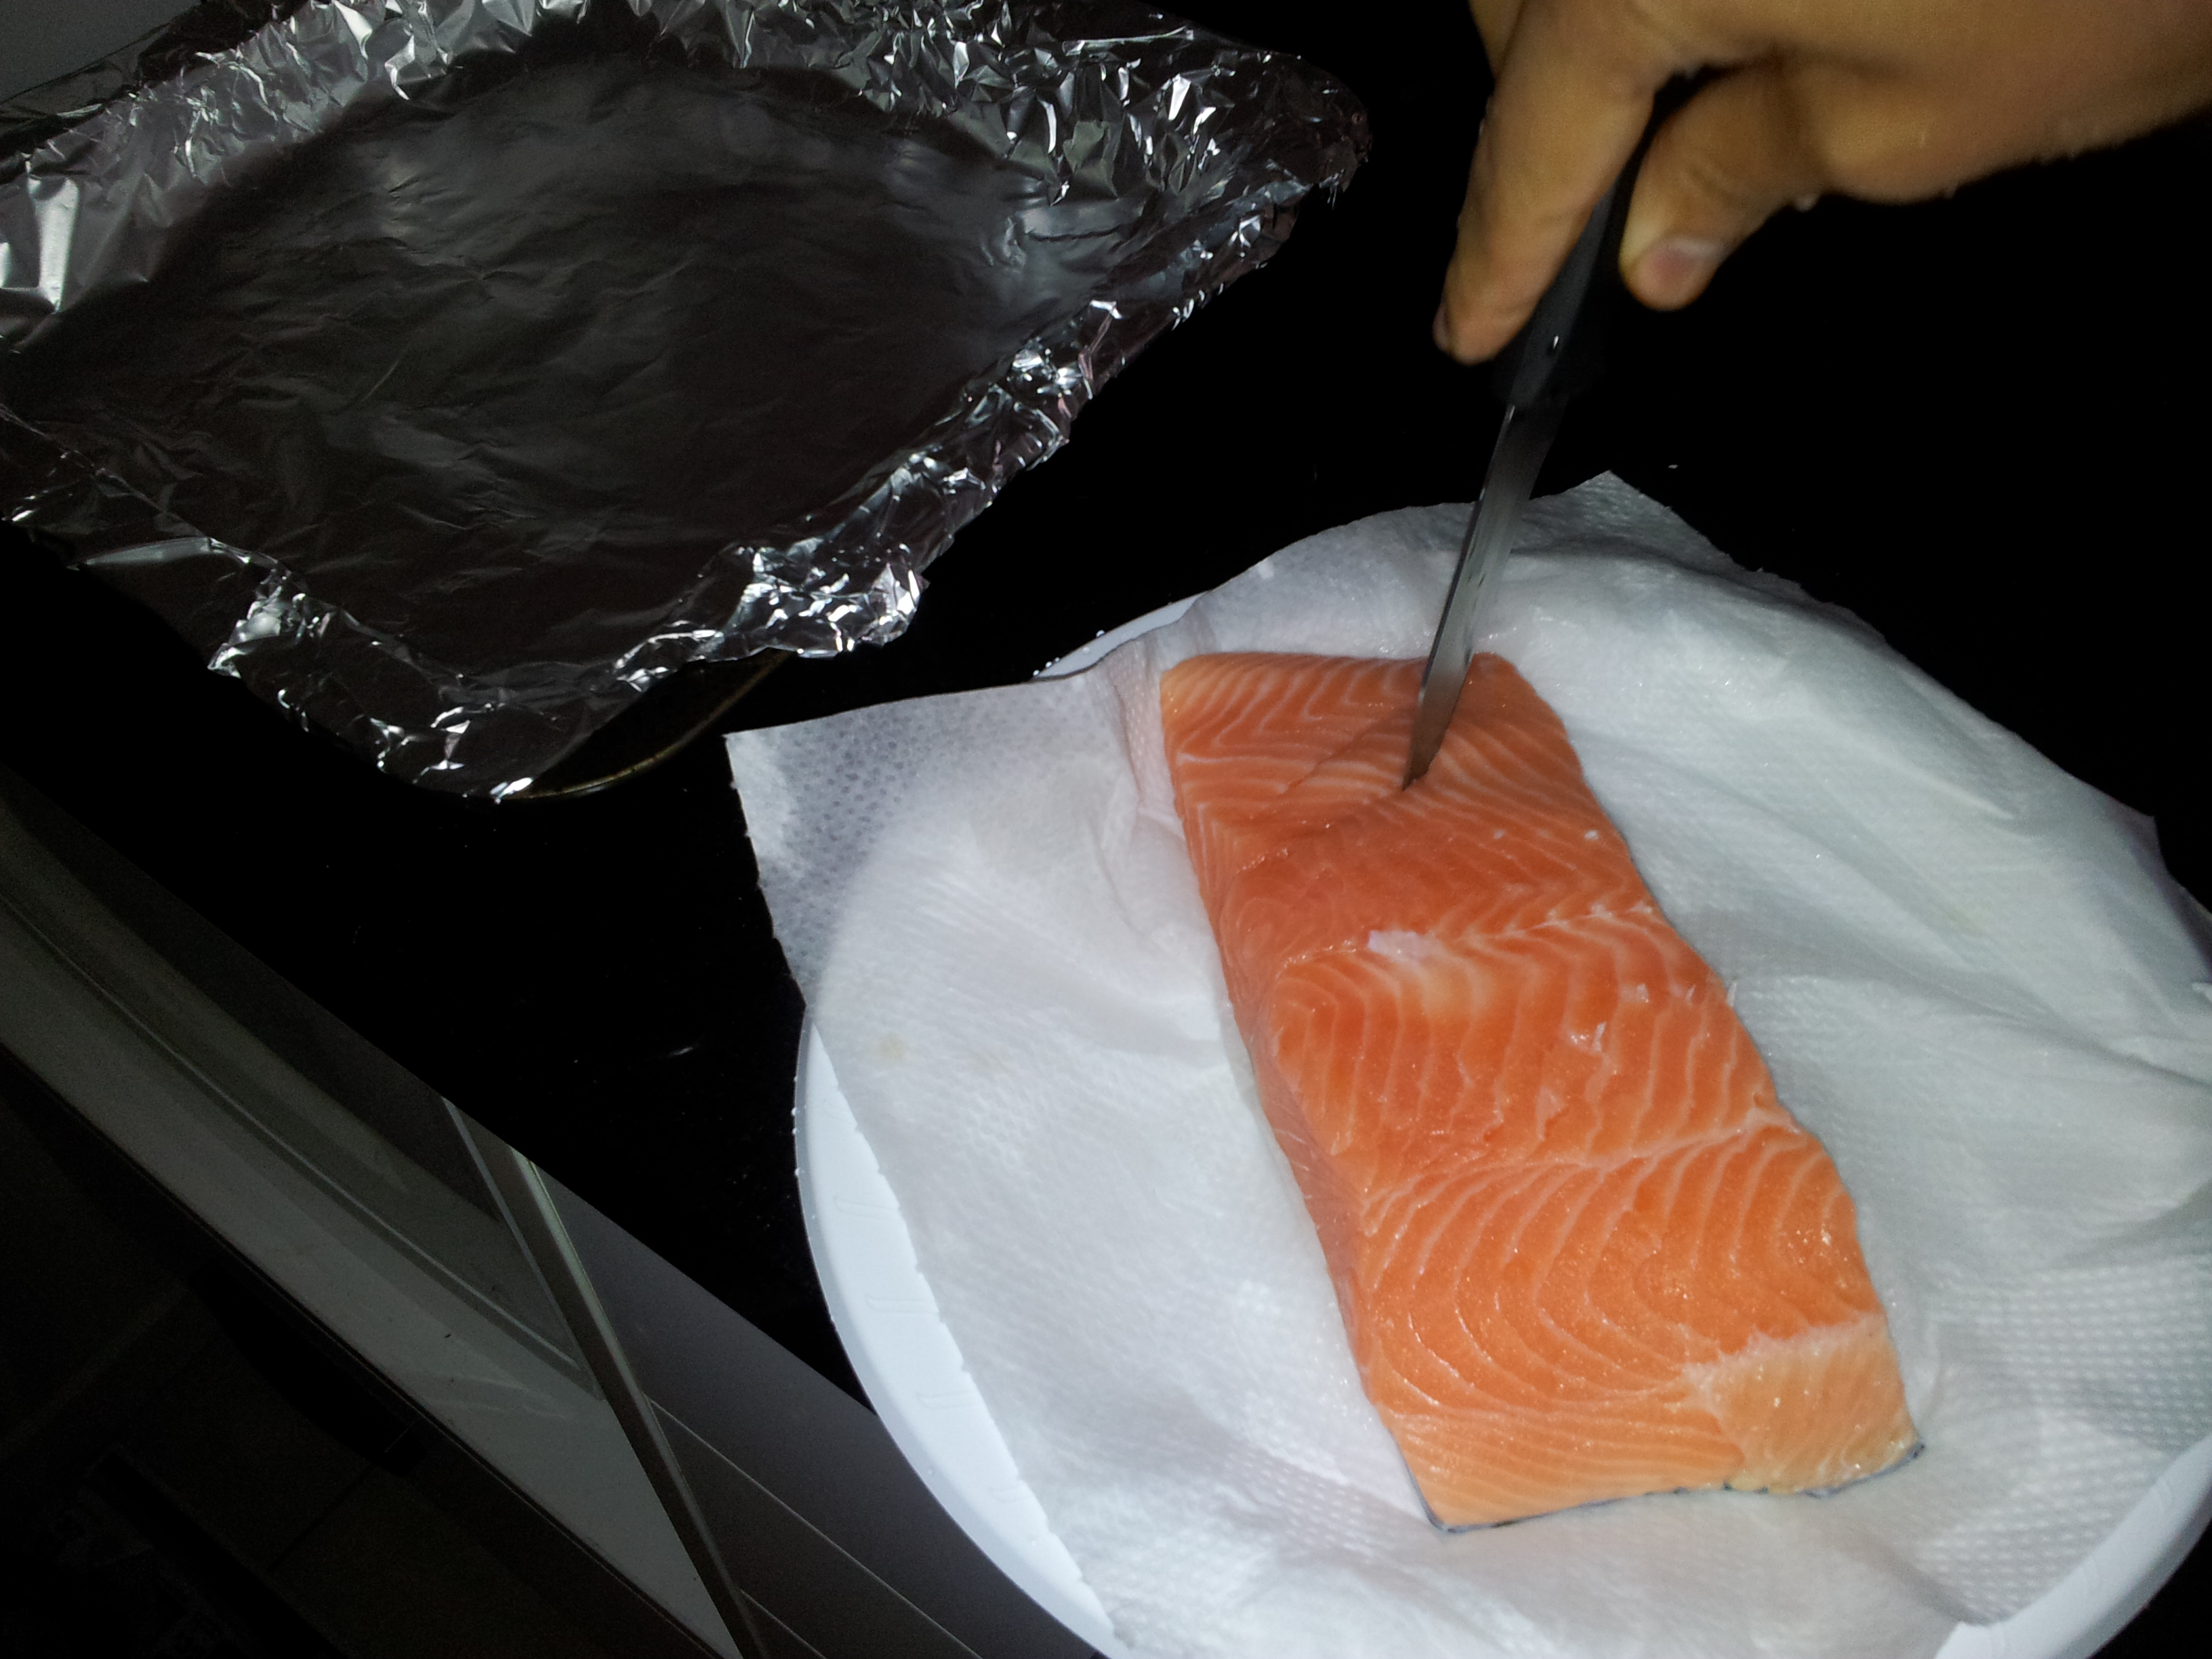 making slits opposite to the line on Salmon